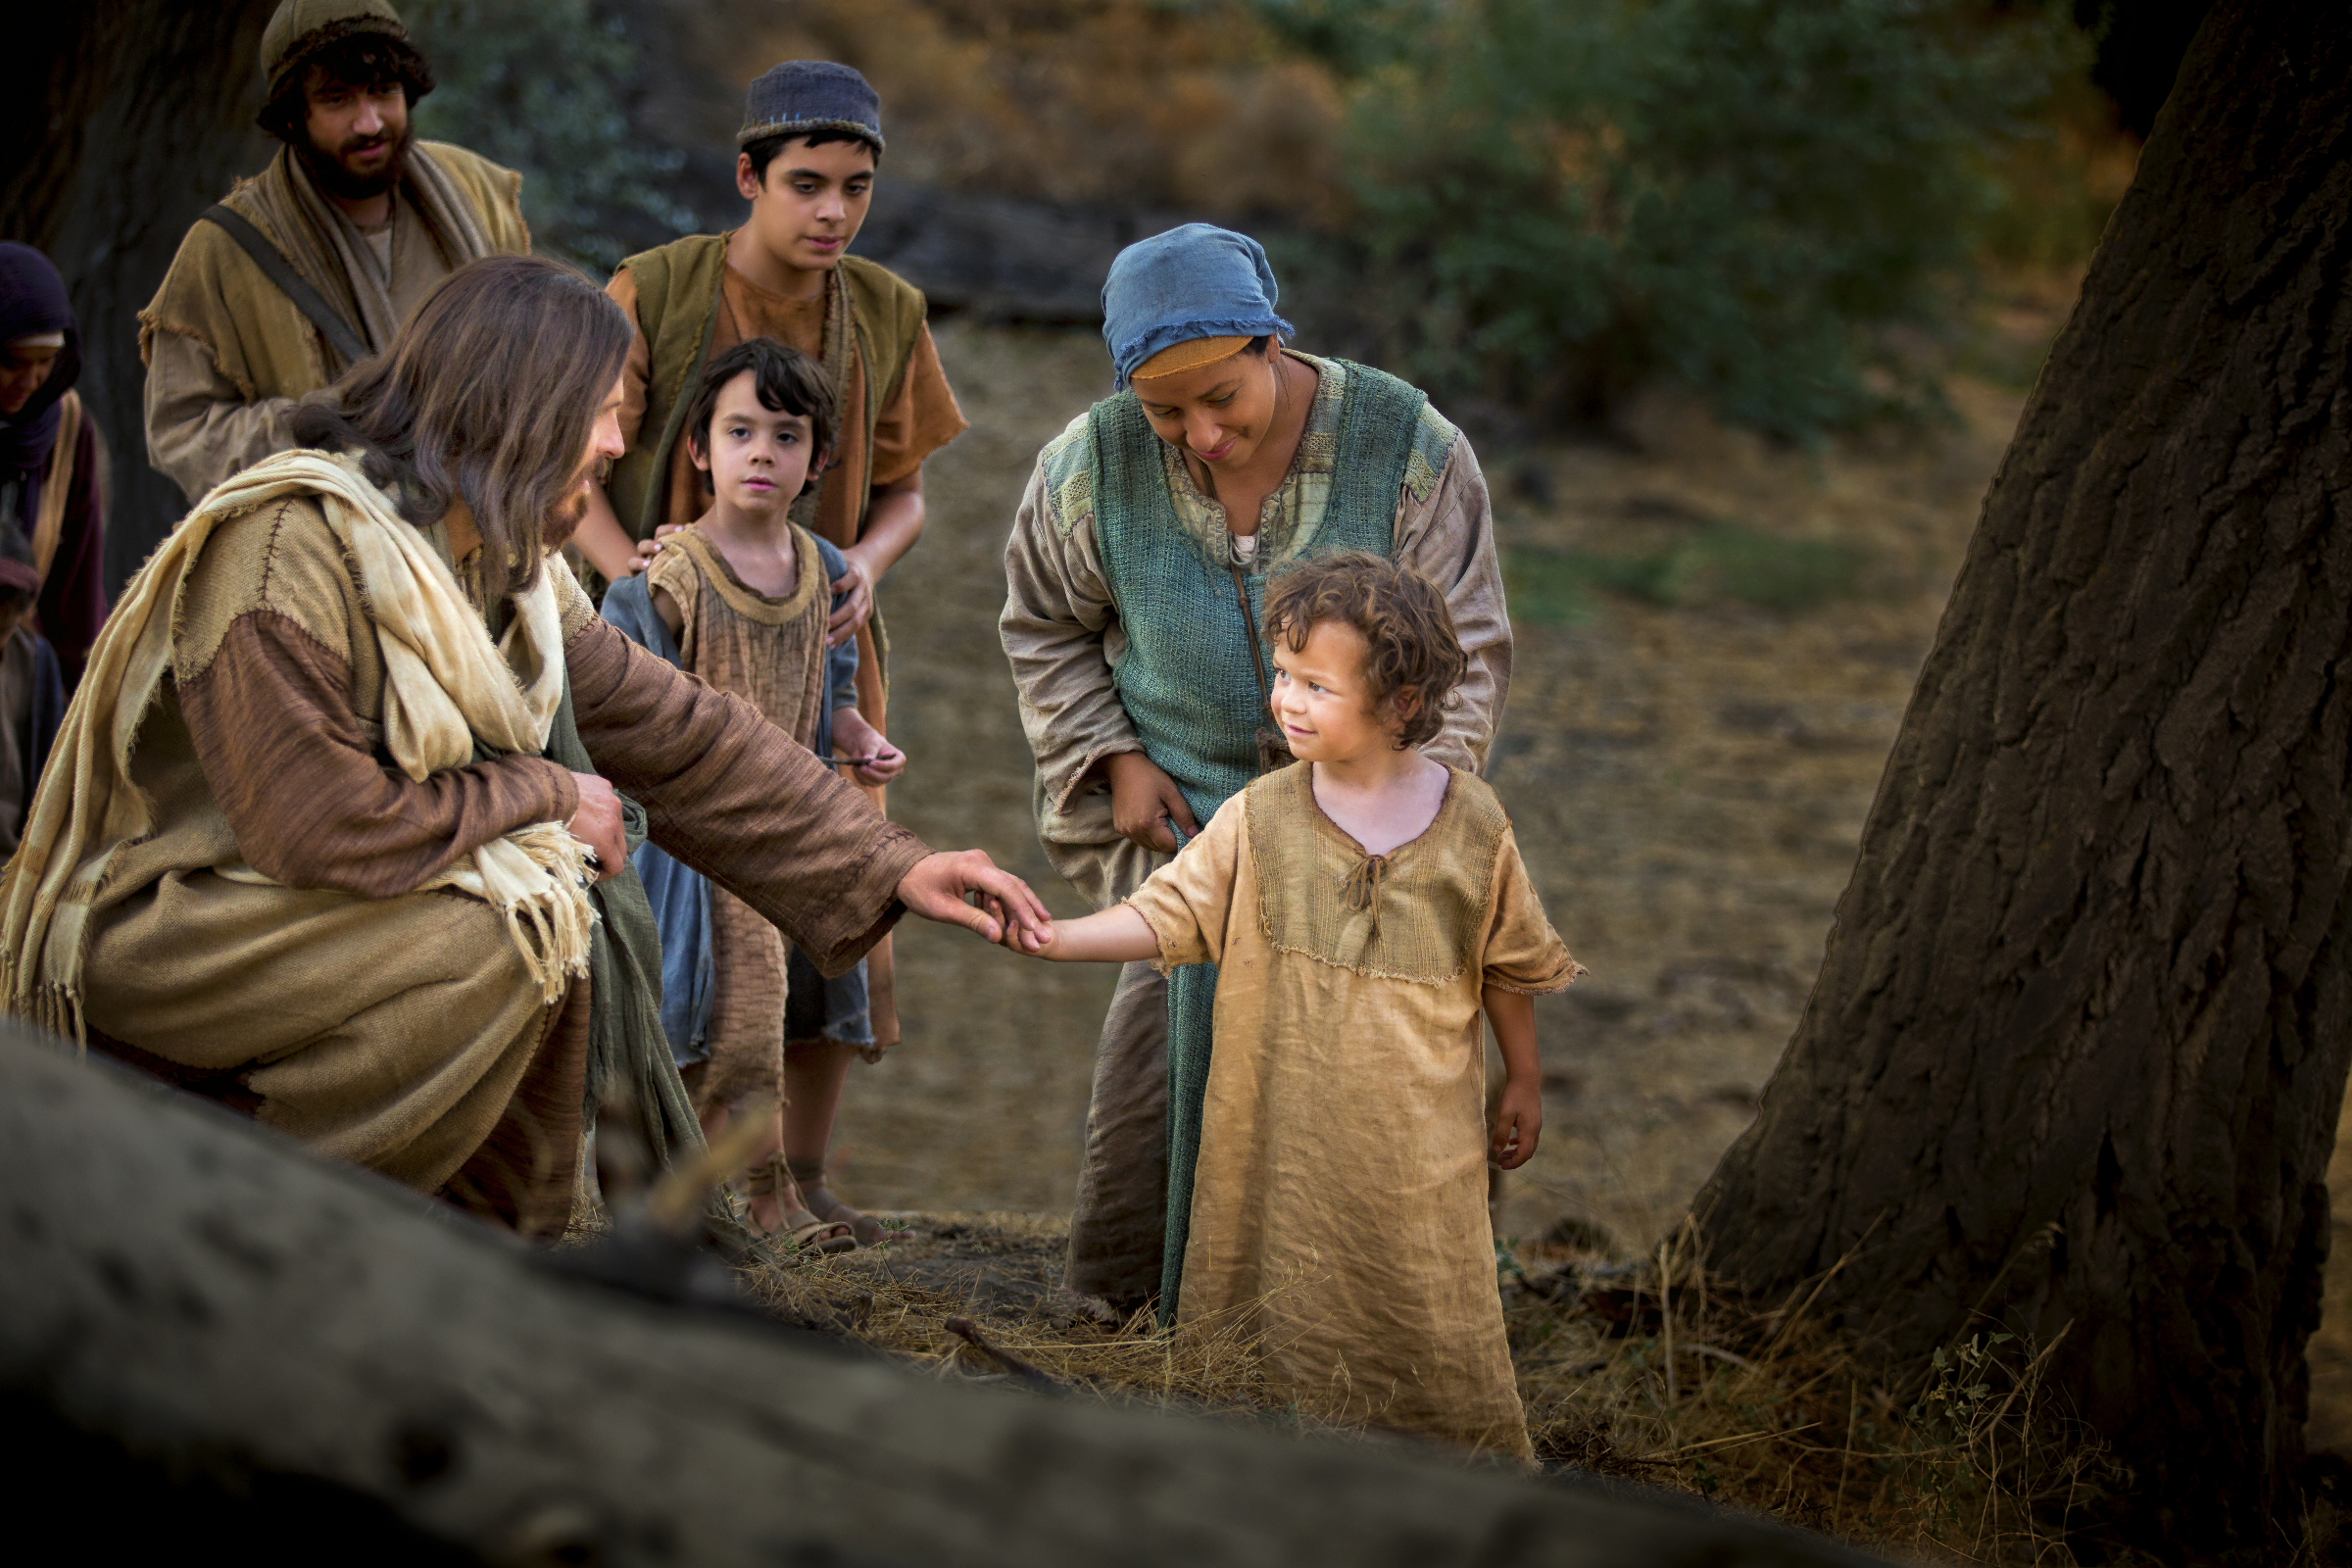 Christ with a child - Child jesus images download ...